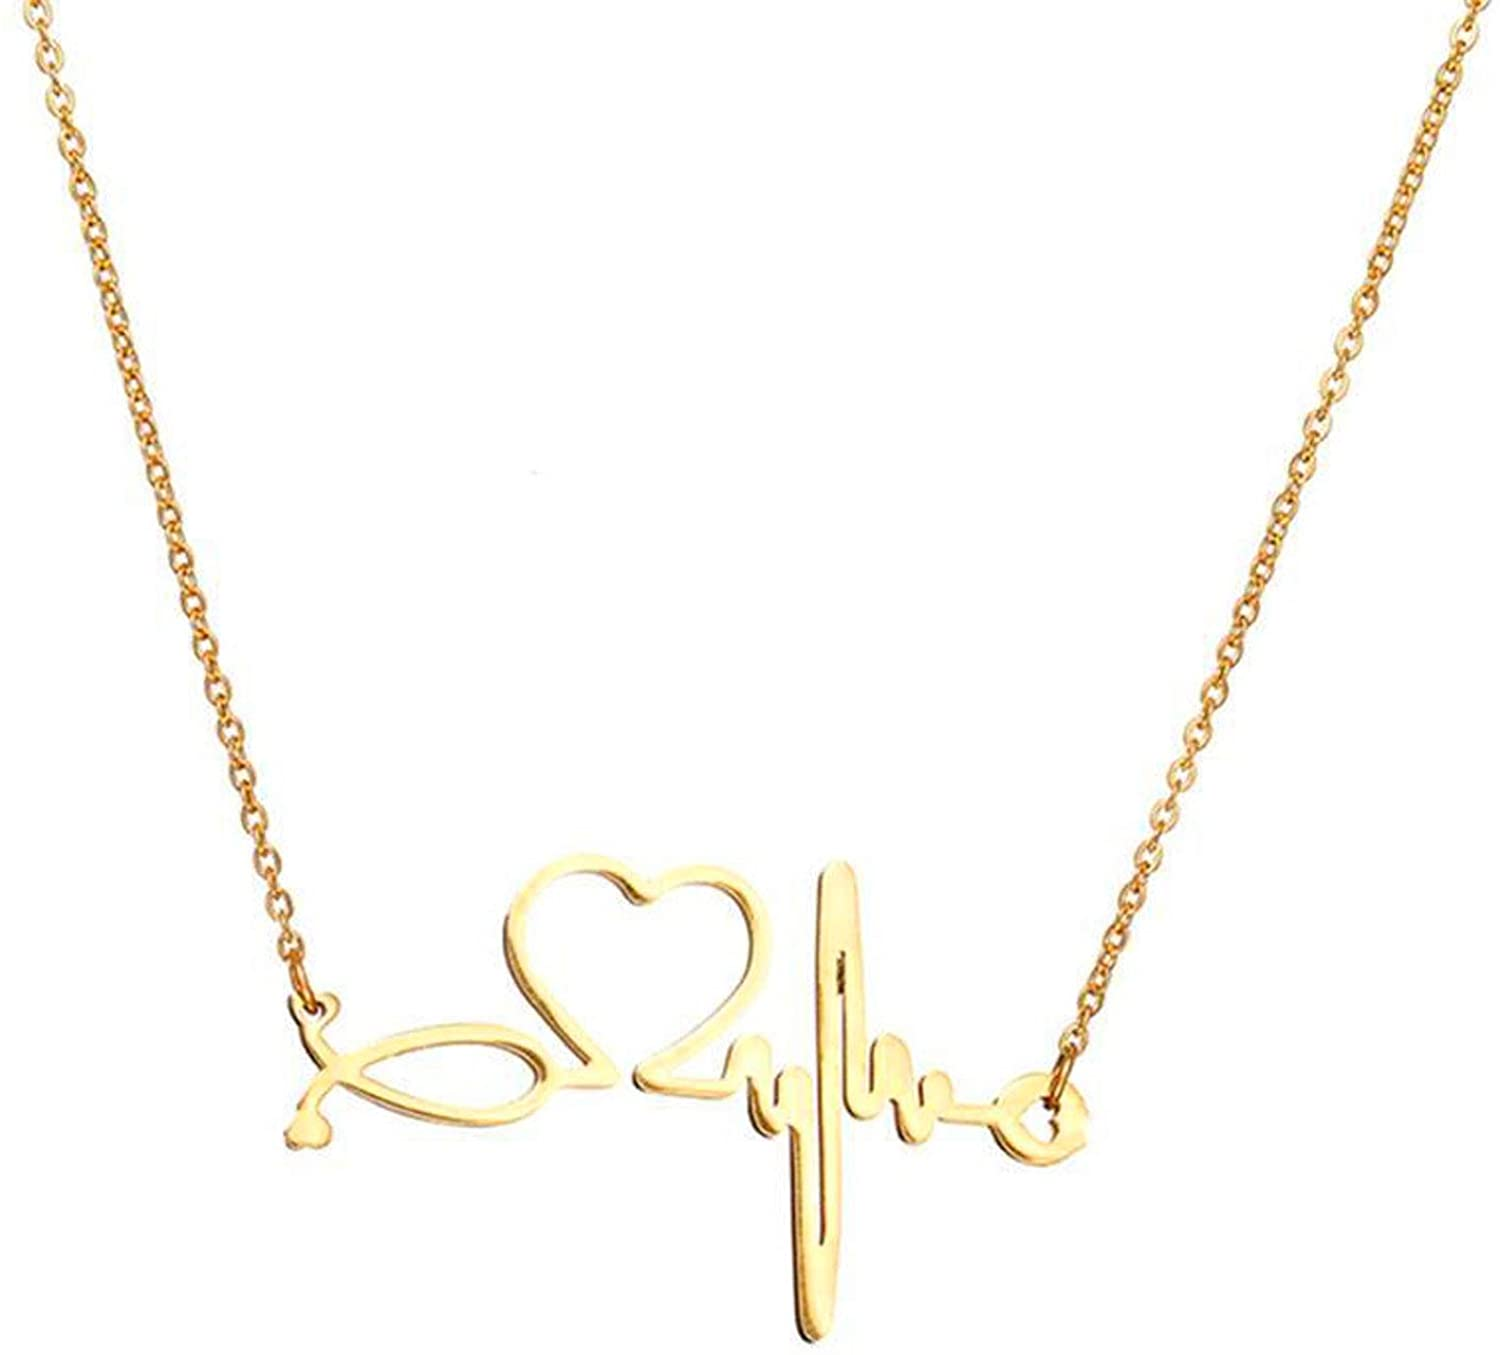 SXNK7 Stainless Steel Nurse Doctor Medical Stethoscope Chain Bijoux Collier EKG Heartbeat Love You Necklaces